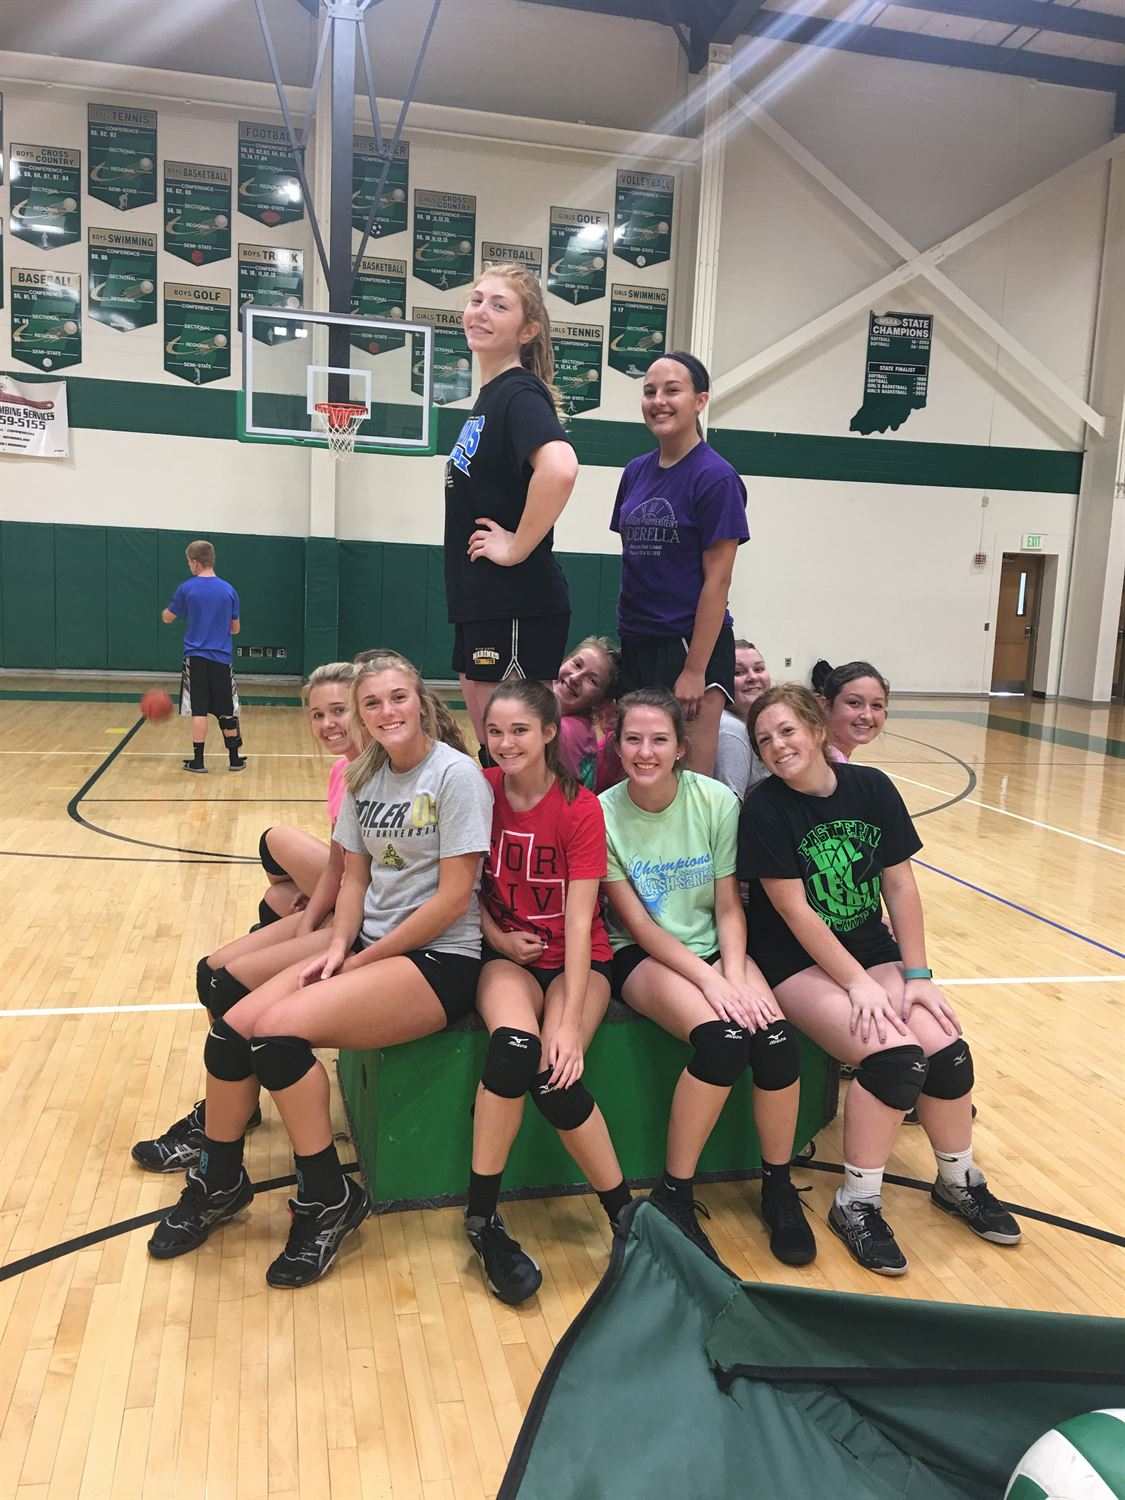 Eastern High School - Girls' Varsity Volleyball 2016